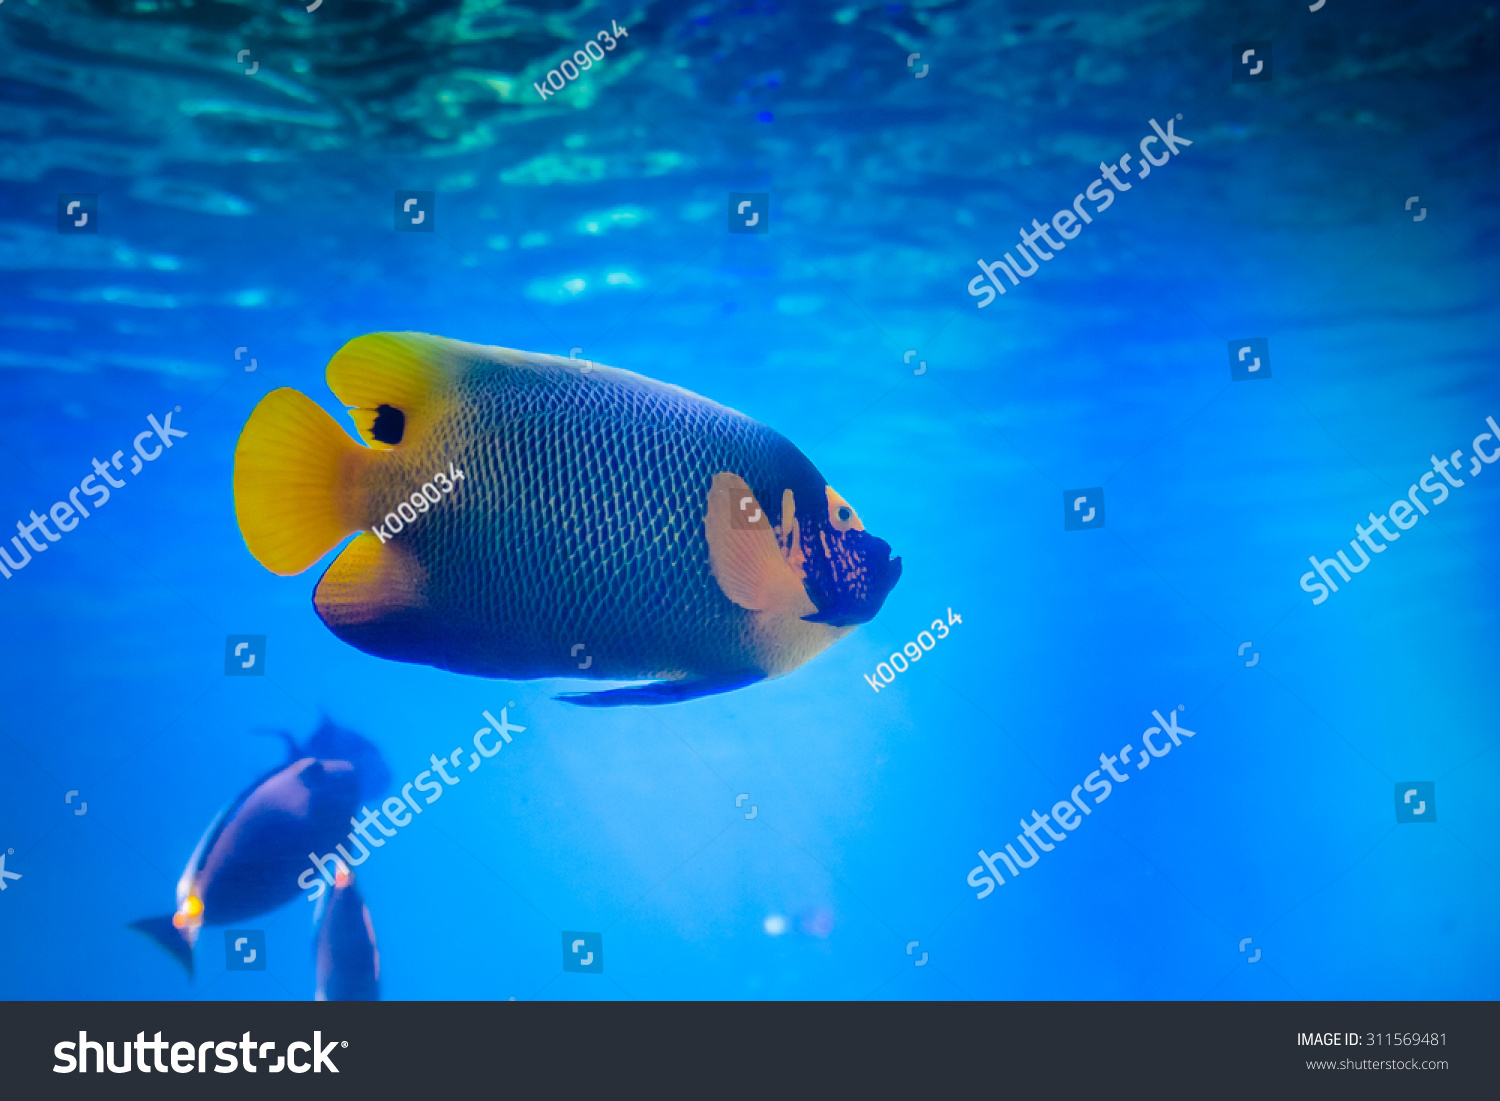 A Beautiful Fish Swimming In The Pool At The Sea World Australia Gold Coast Queensland Stock